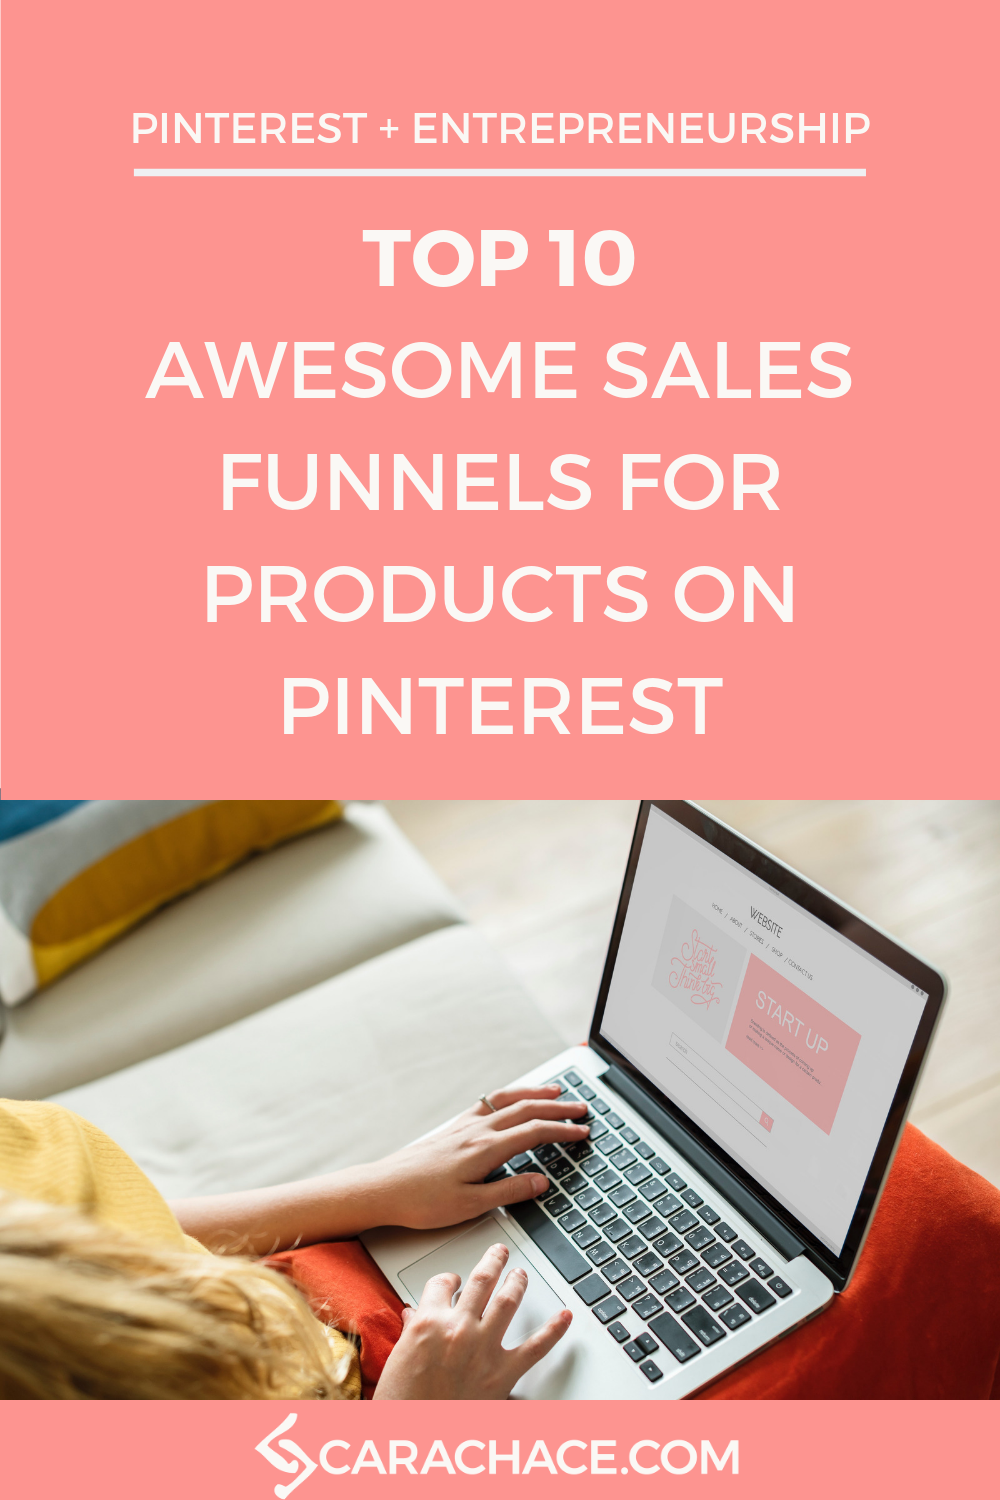 Top 10 Awesome Sales Funnels For Products On Pinterest Blog Thumbnail.png